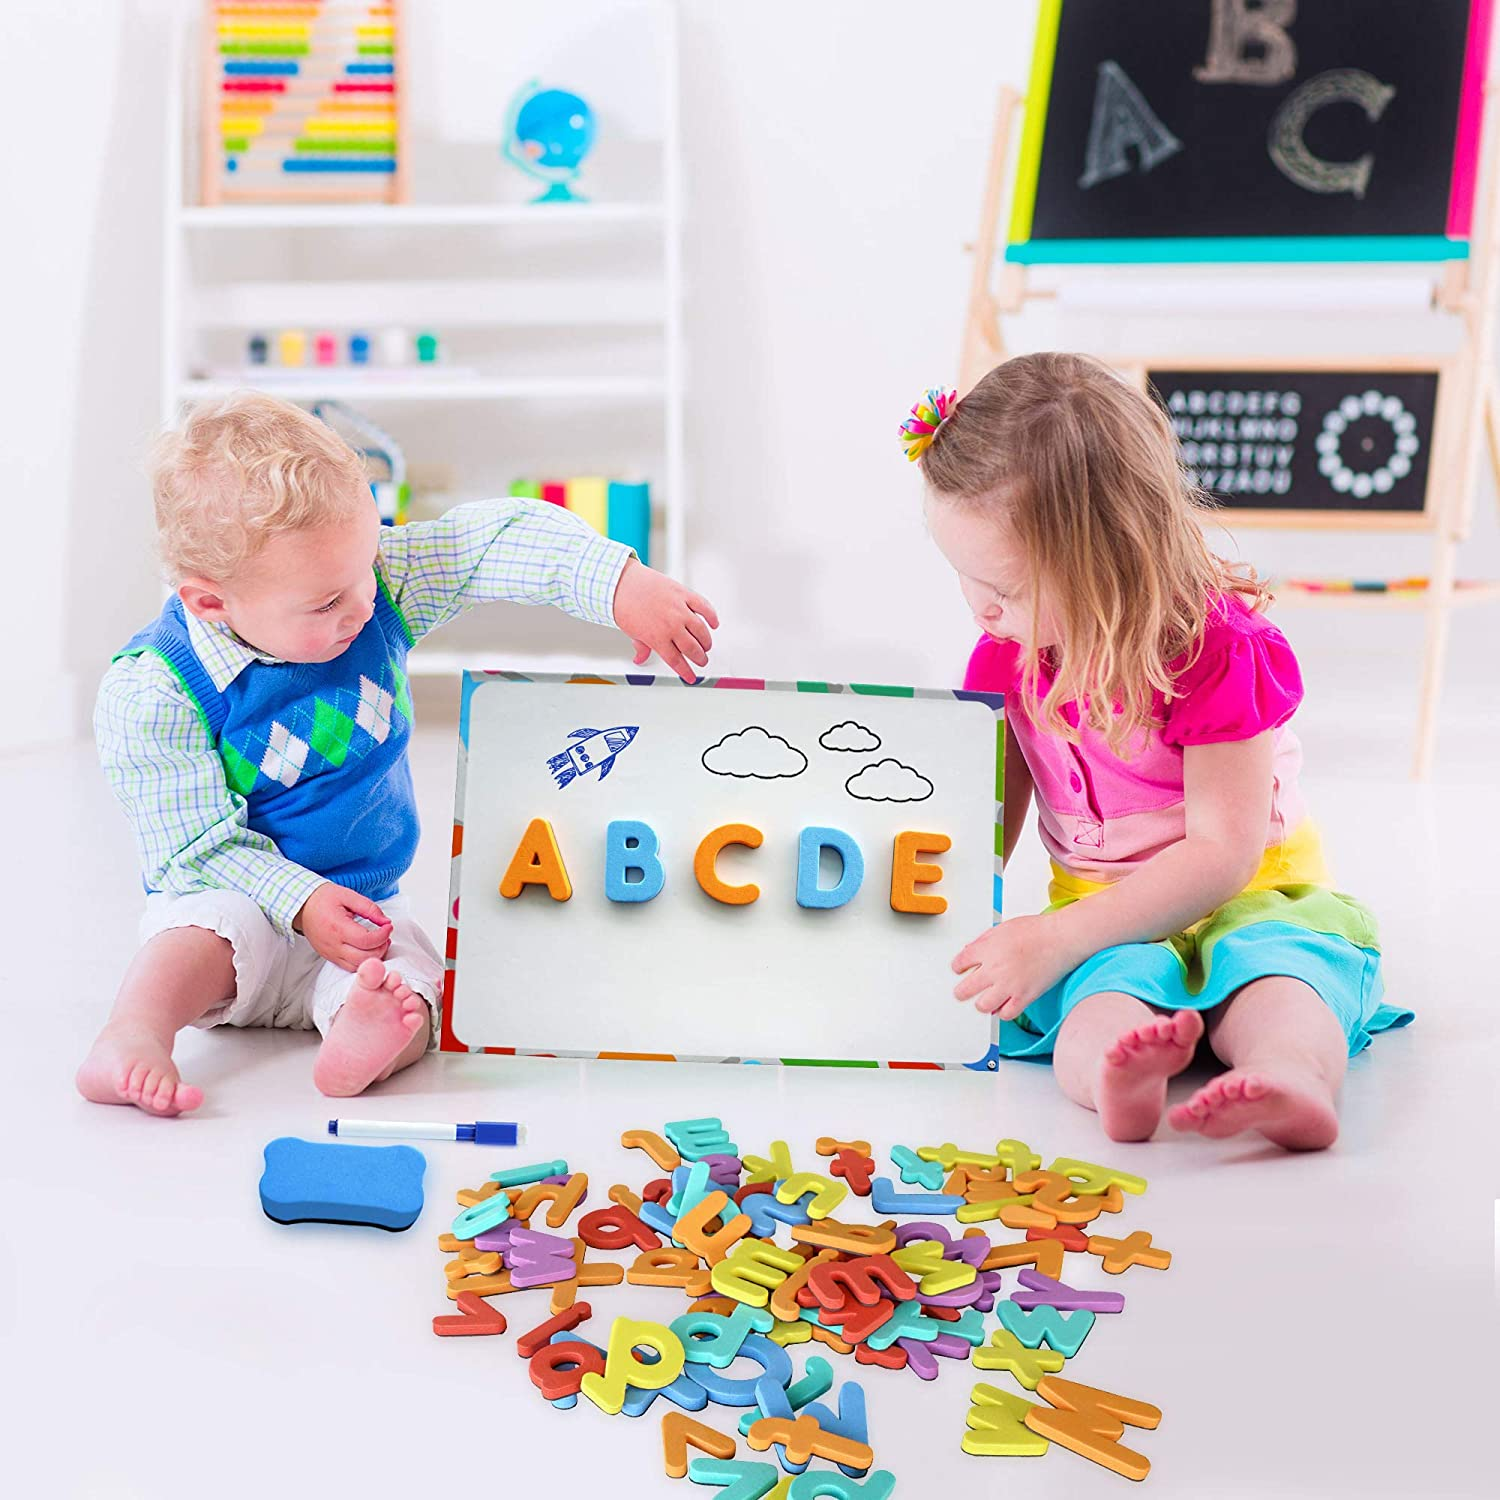 Includes 2 Storage Boxes Board Magnetic Letters and Numbers for Toddlers Thick Foam Fridge Magnets for Kids The Complete Set: 182 Letters and 81 Numbers /& Symbols Pens and Eraser